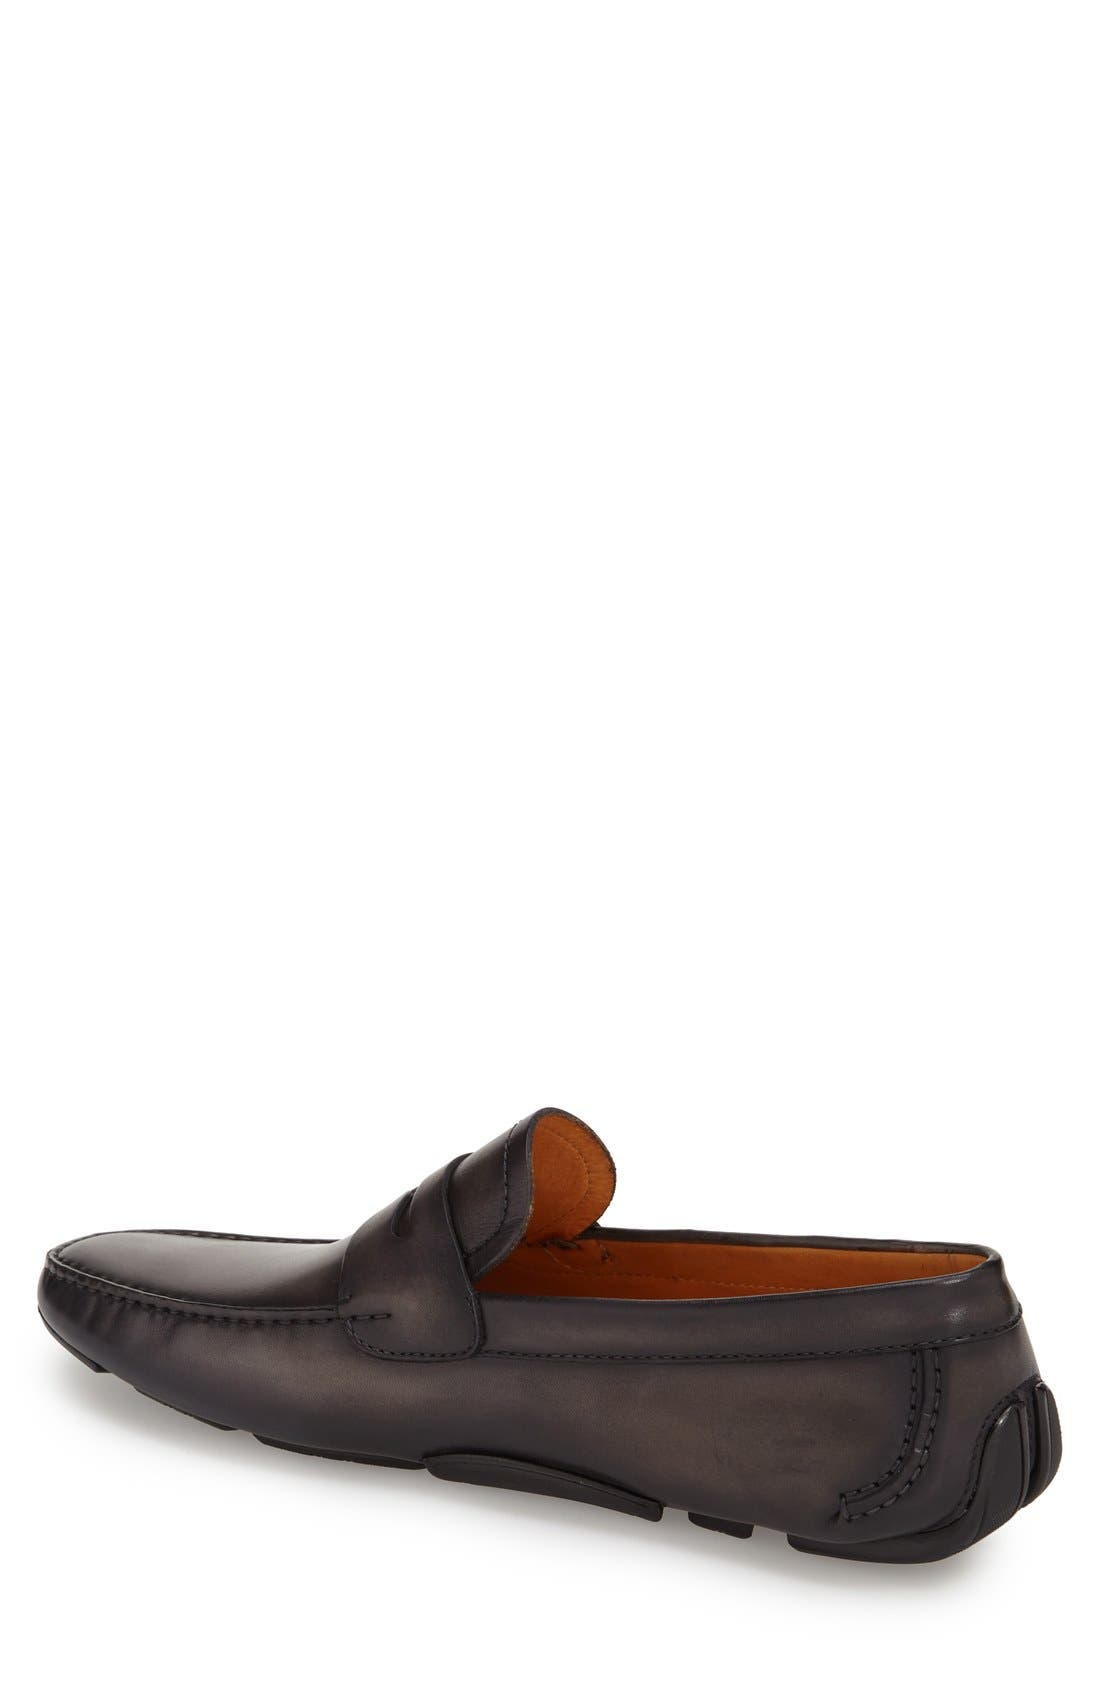 'Dylan' Leather Driving Shoe,                             Alternate thumbnail 15, color,